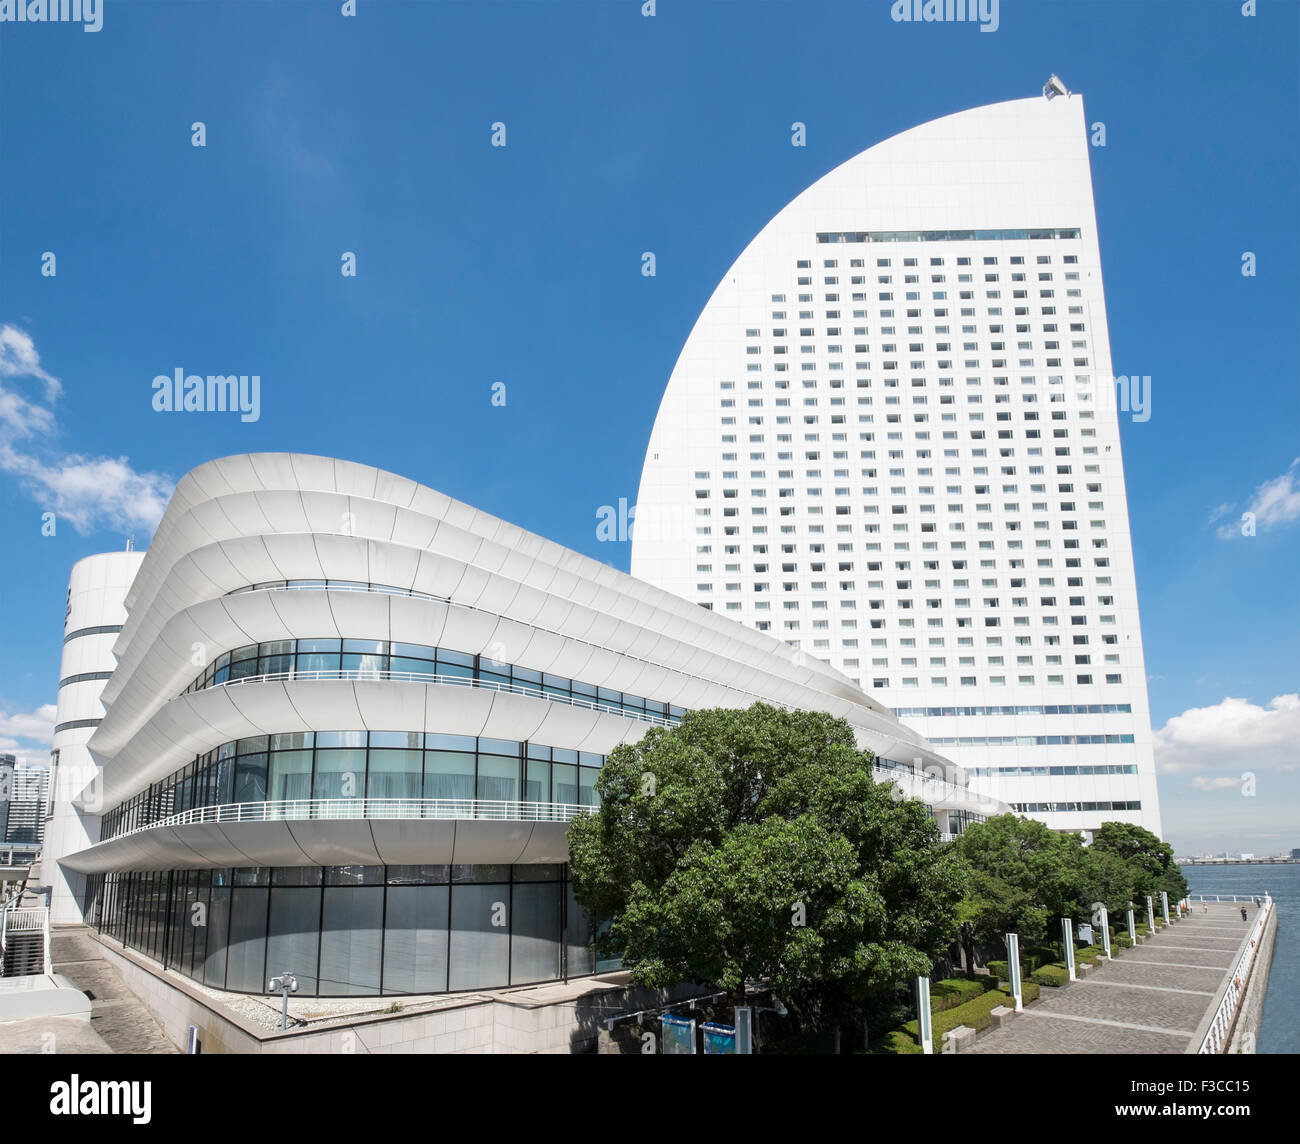 View of modern Intercontinental Hotel and Pacifico Conference  Centre in Minato Mirai, Yokohama, Japan - Stock Image